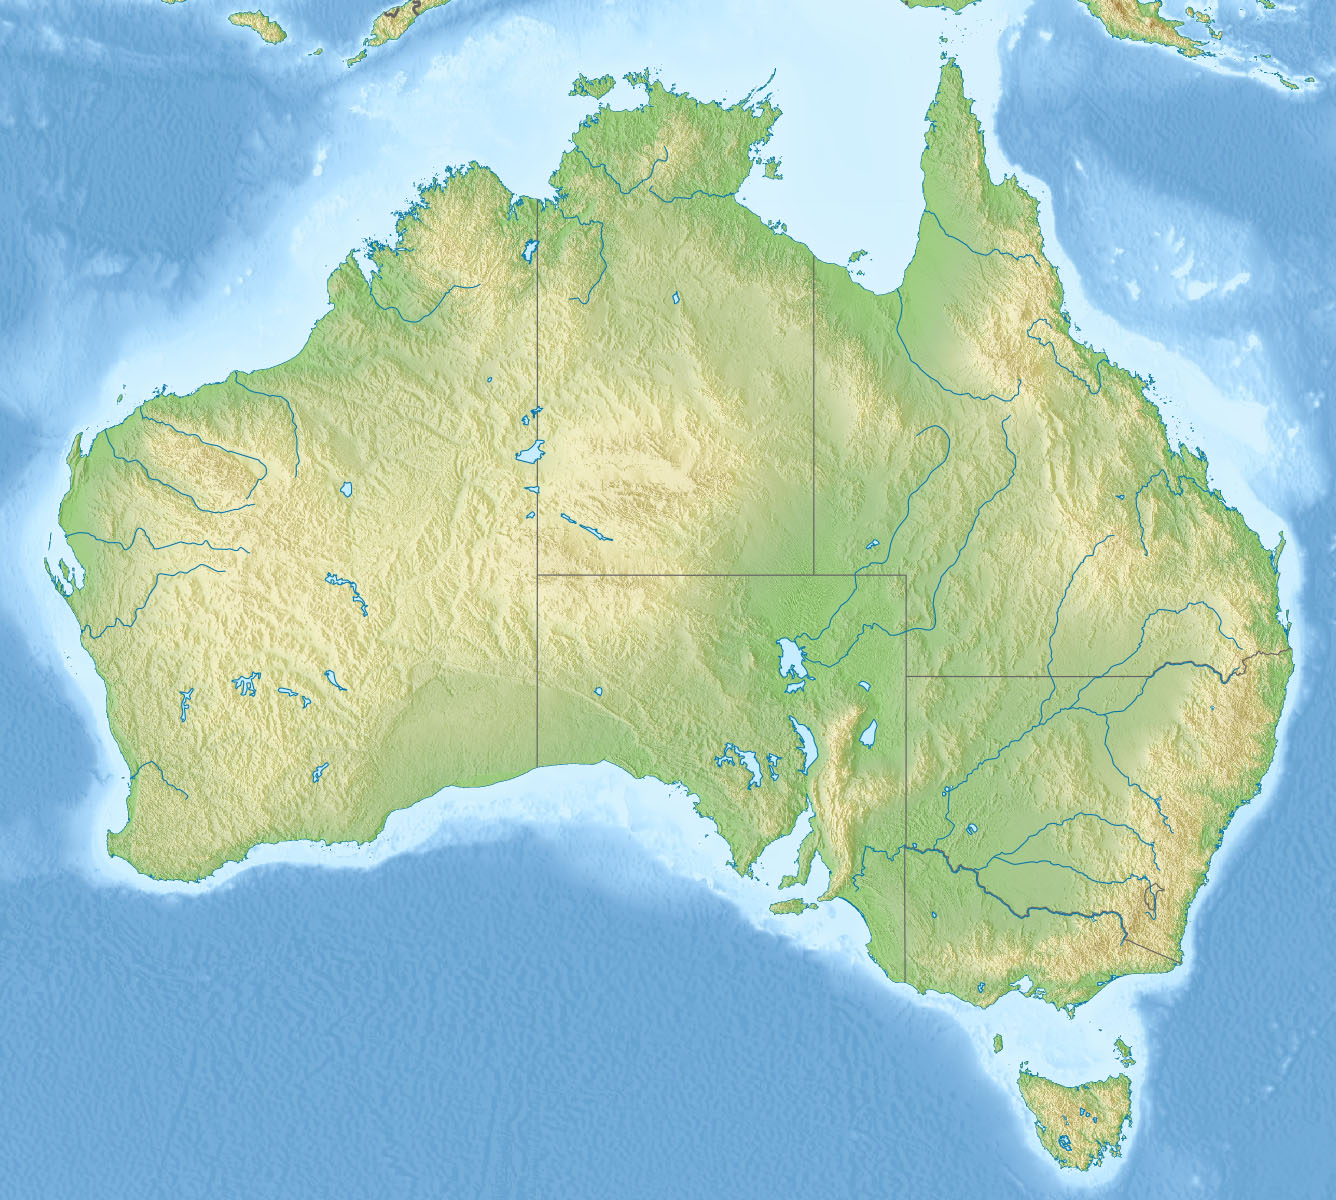 Australia Map 2017.Great Australian Bight Marine Park 2017 Wikipedia